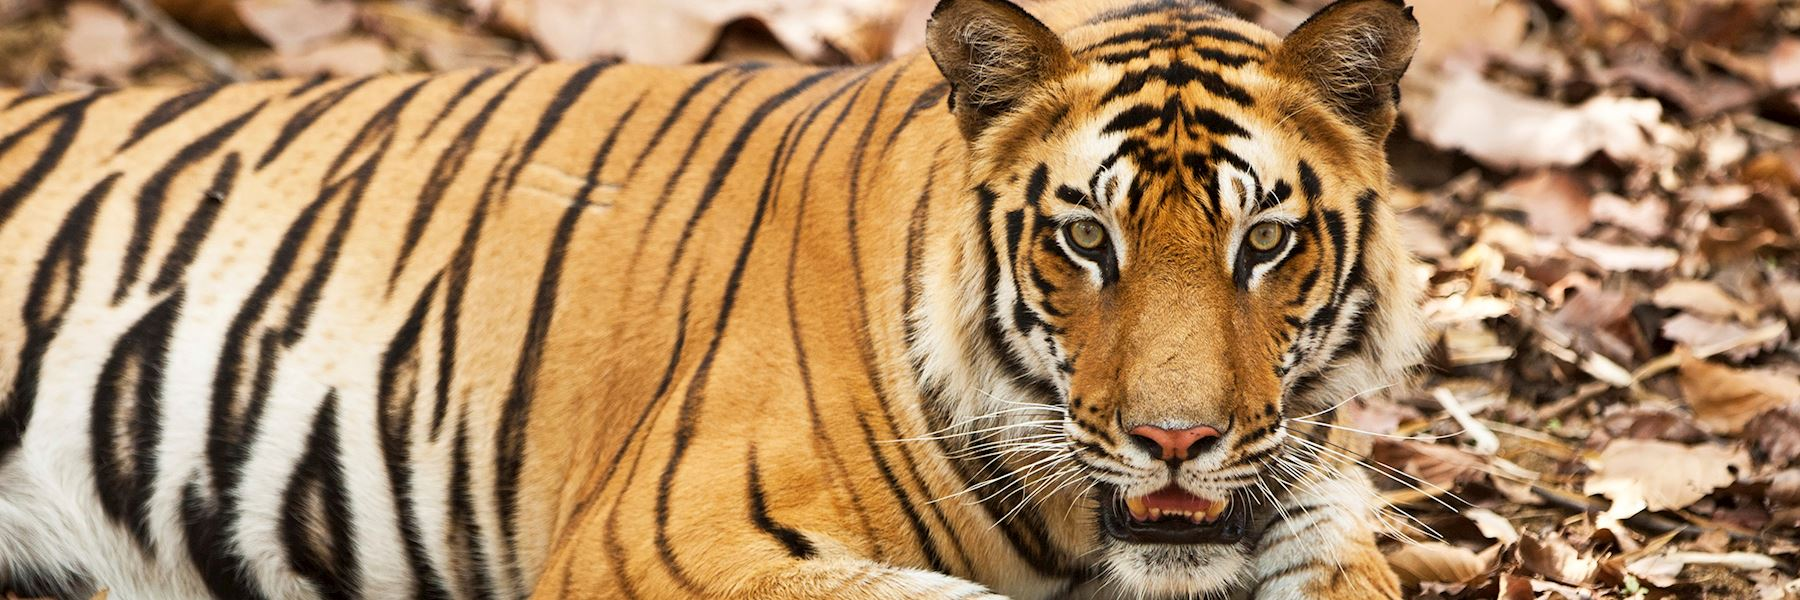 Visit Bandhavgarh National Park, India